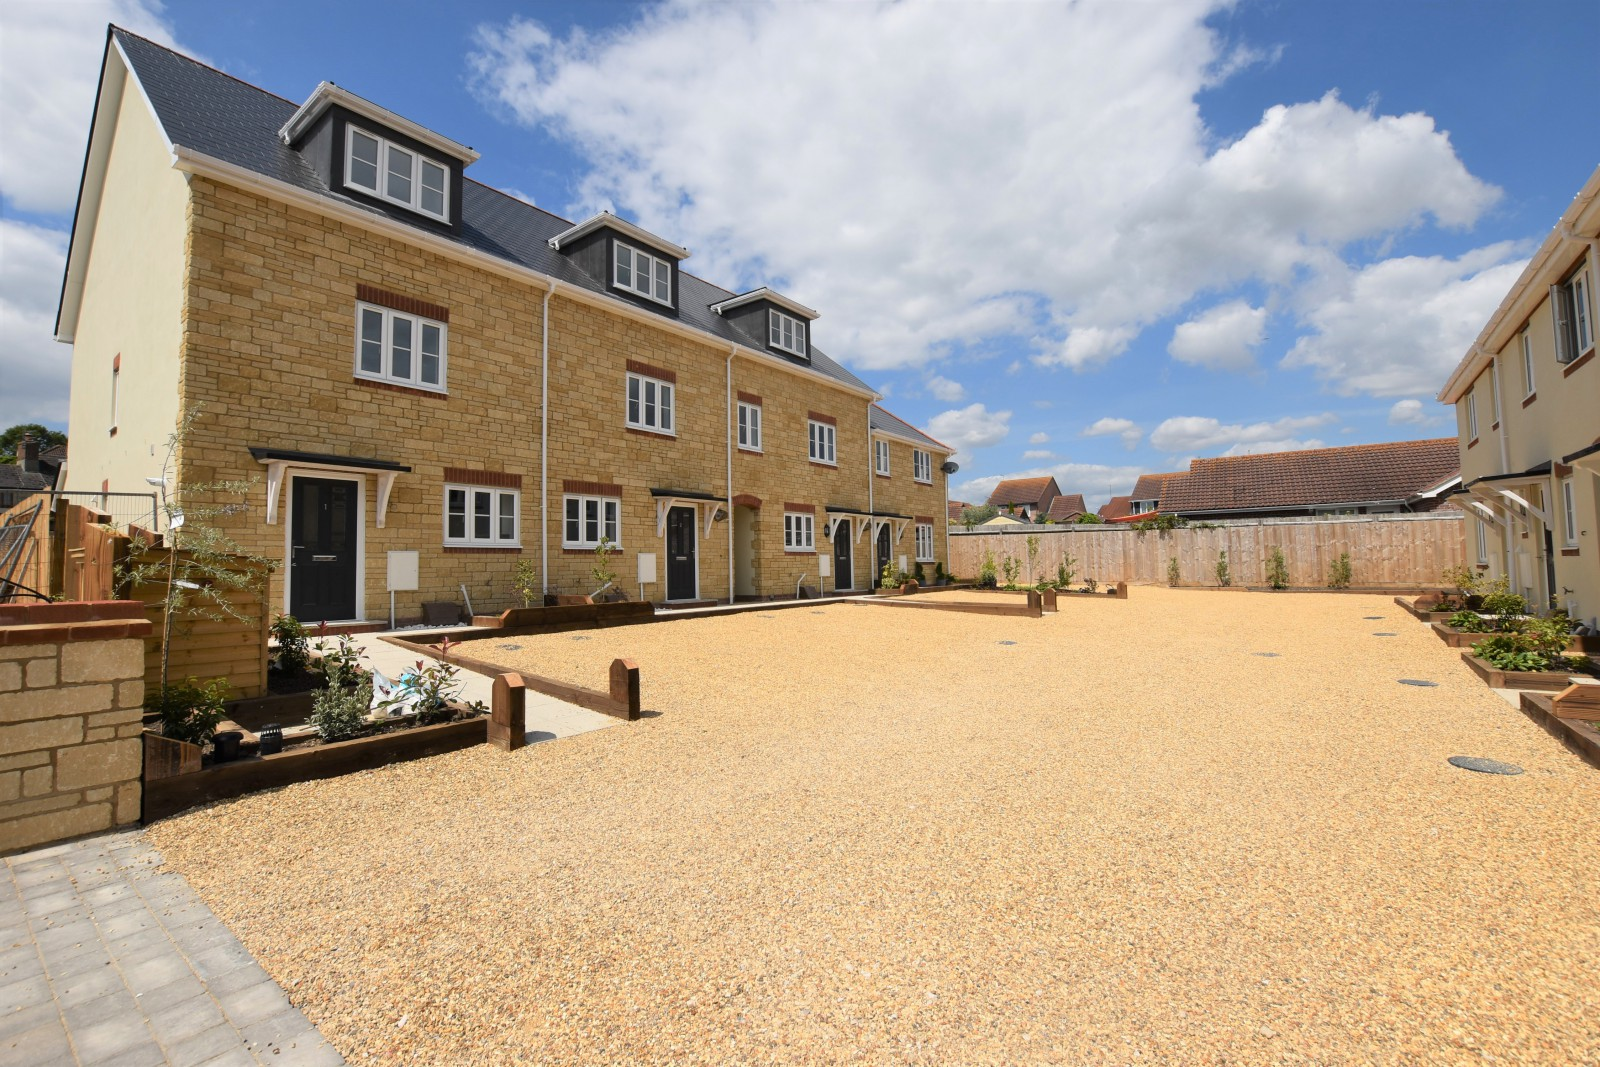 Plot 3 Daylesford, Weymouth